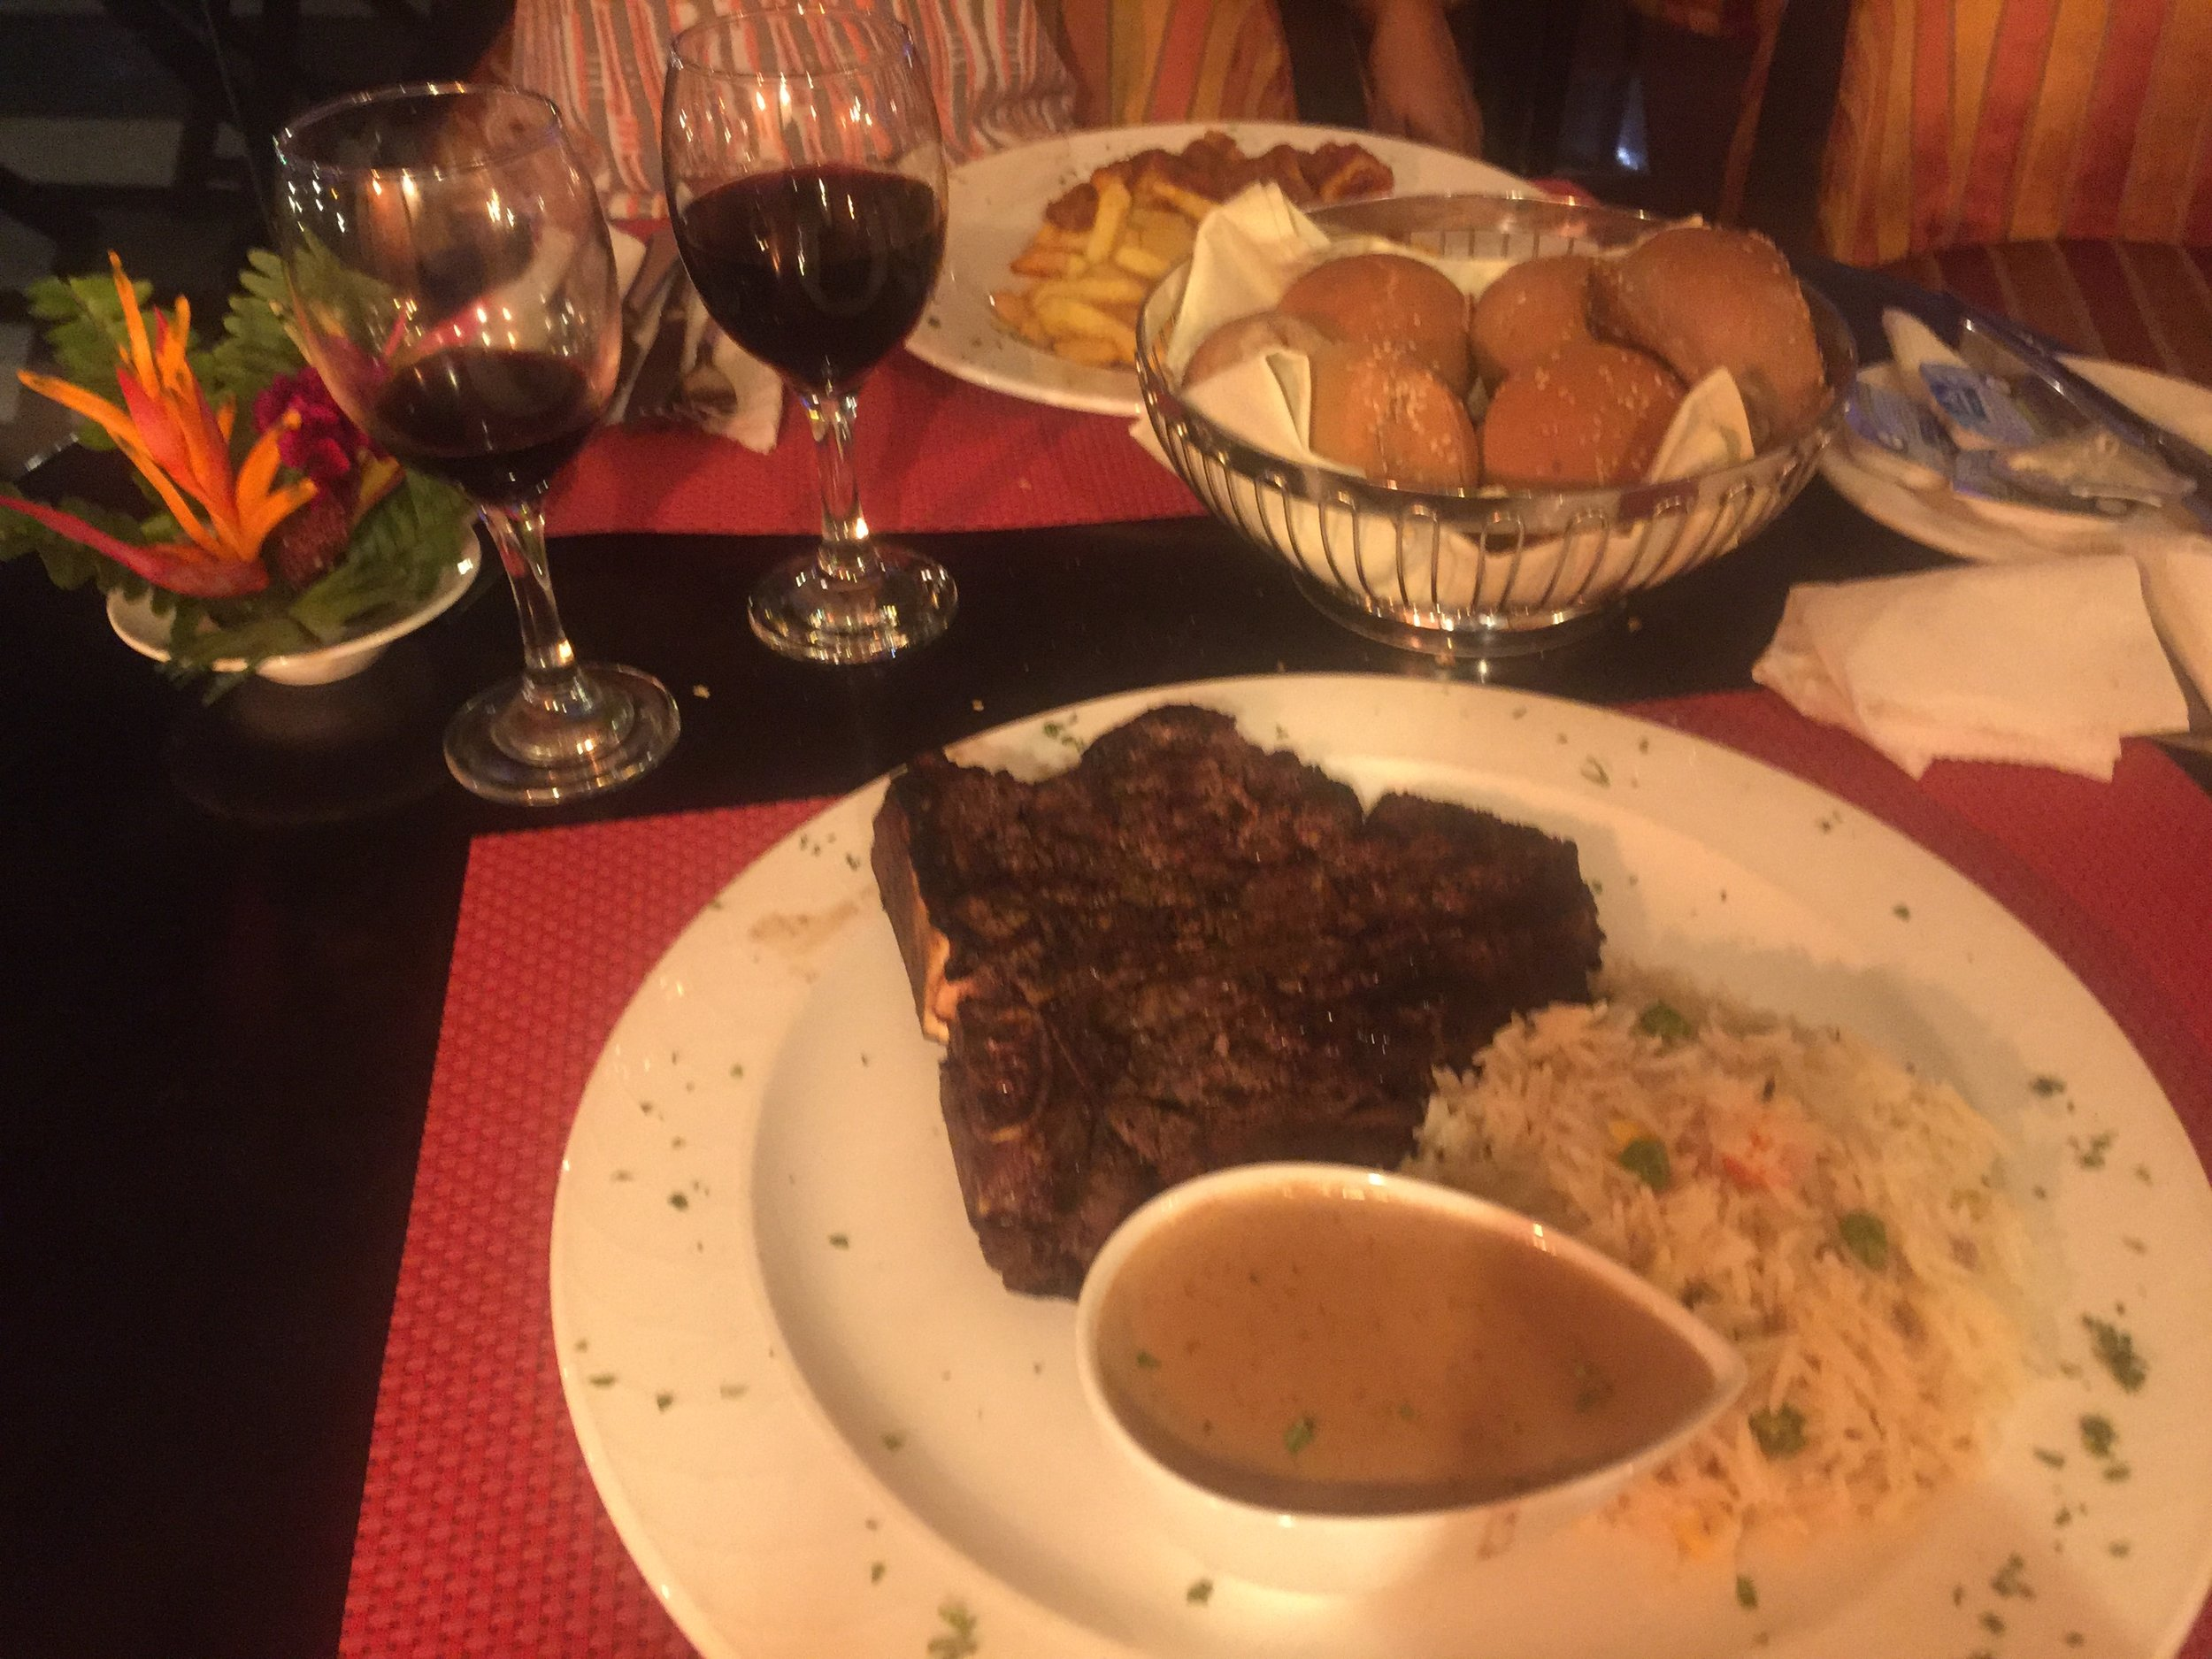 Dinner. I had Moorhouse's special for the evening; Steak and Basmati rice. It was sooo yummy.